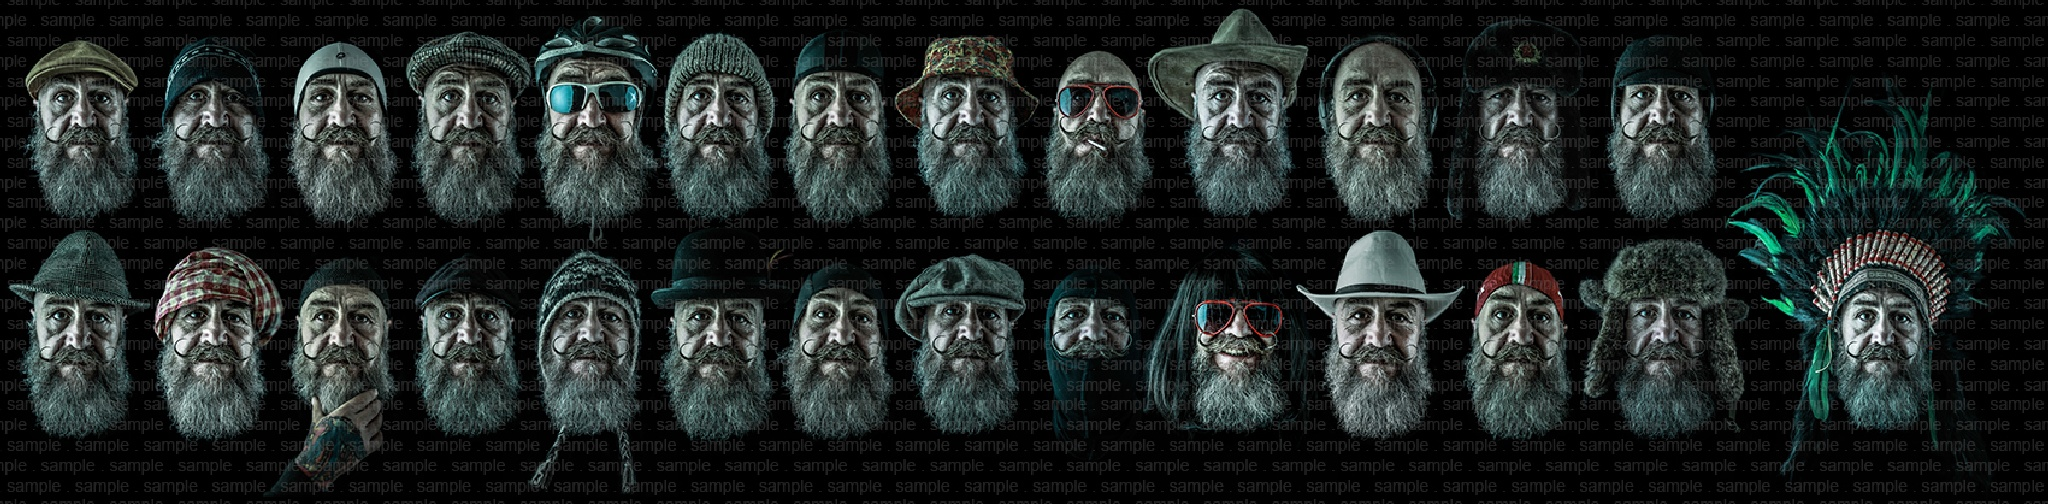 The many hats of Pip!  by philip.atkins